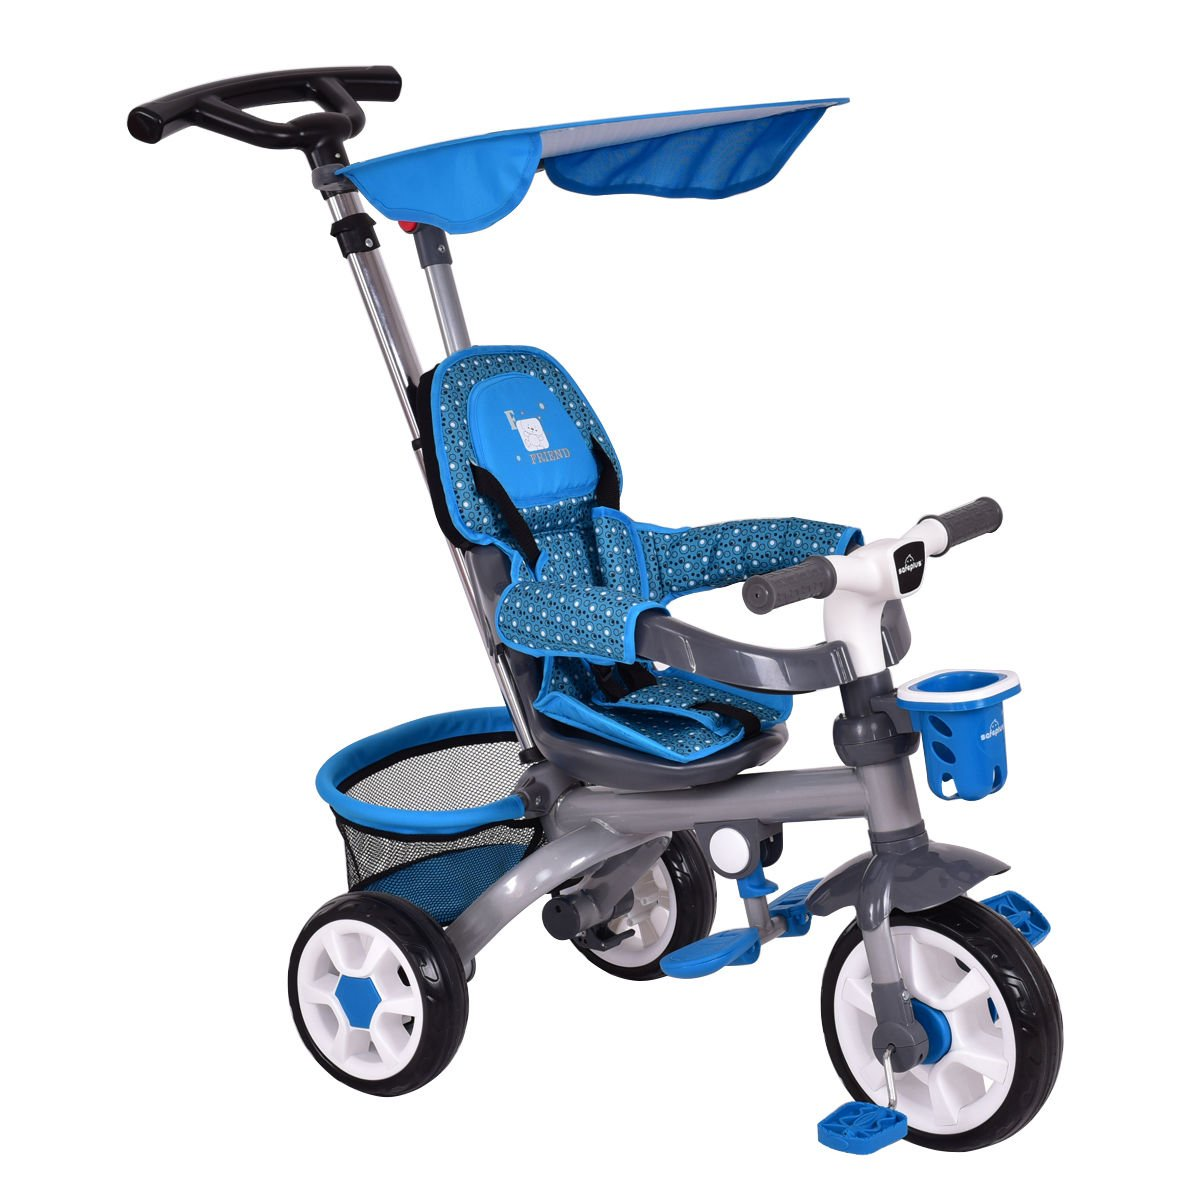 Kids Stroller Tricycle Detachable Learning Toy Bike with Canopy Basket 4-in-1